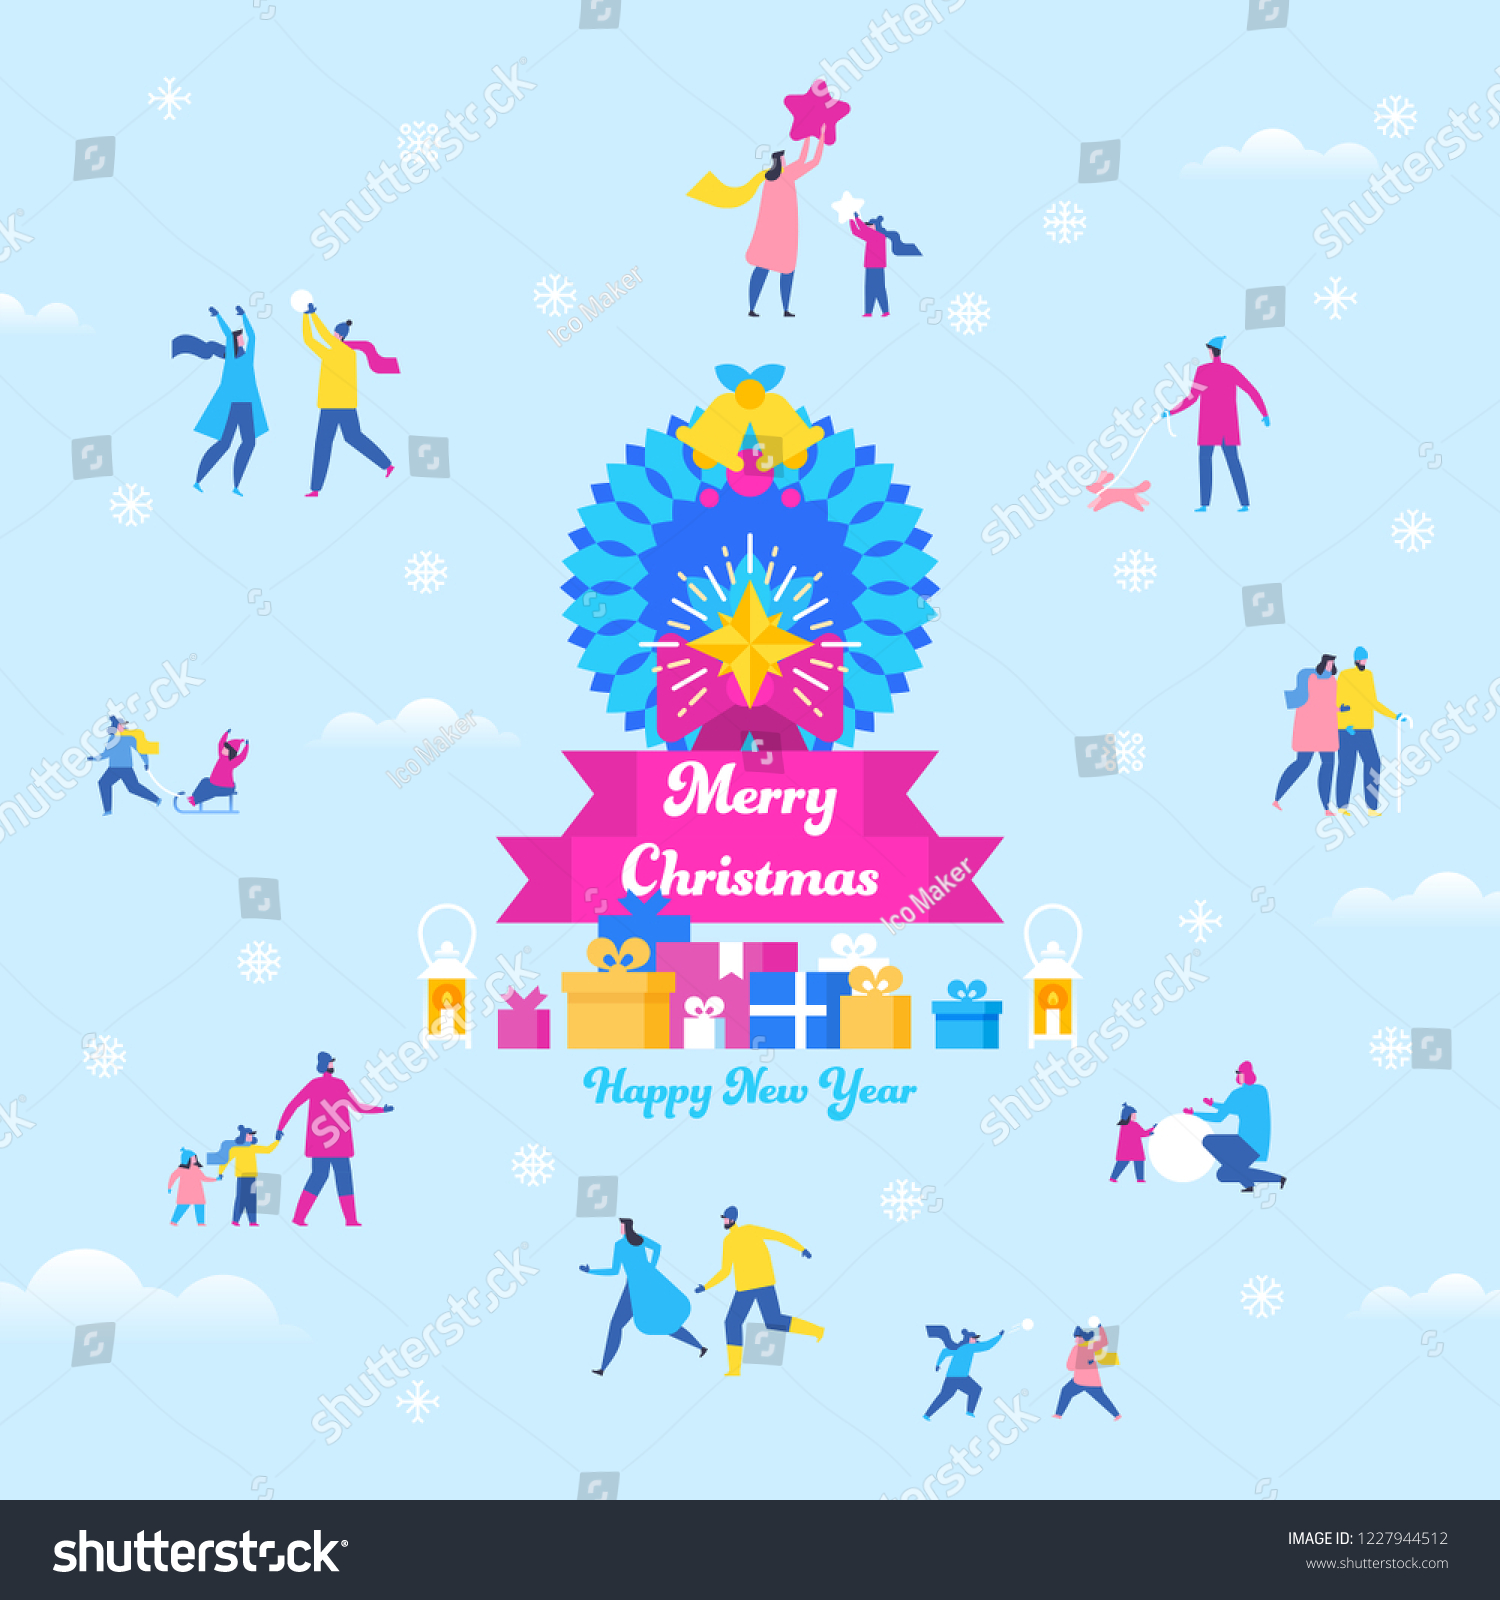 merry christmas and happy new year greeting card with small characters of family couple